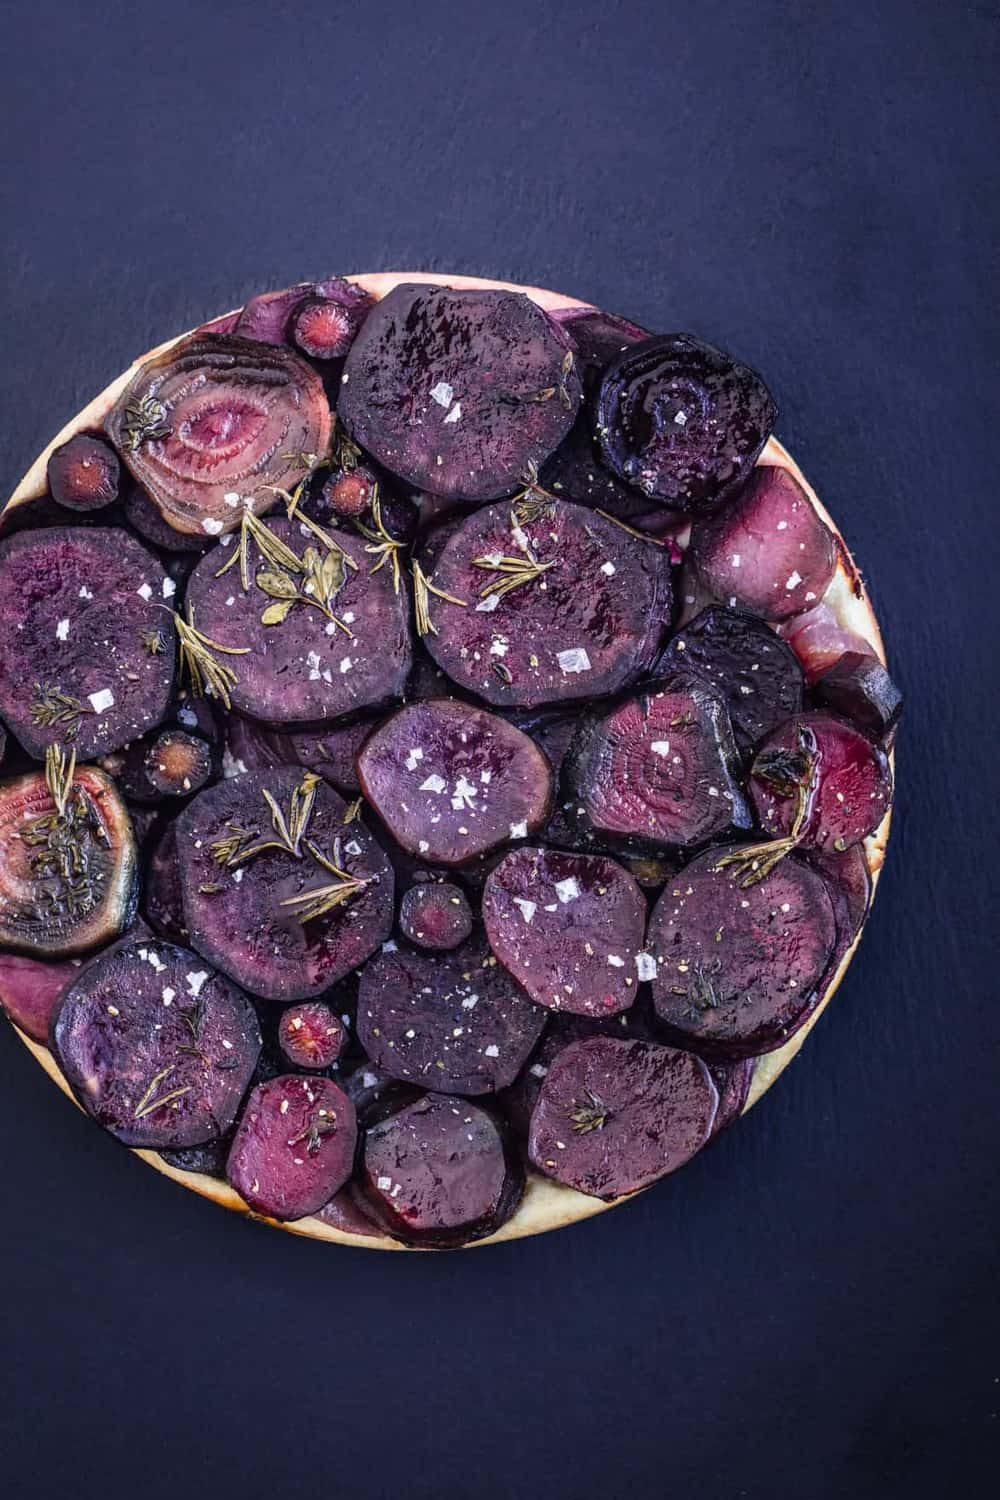 Mostly purple root vegetable tarte tatin all done with fresh herbs and flaky sea salt.